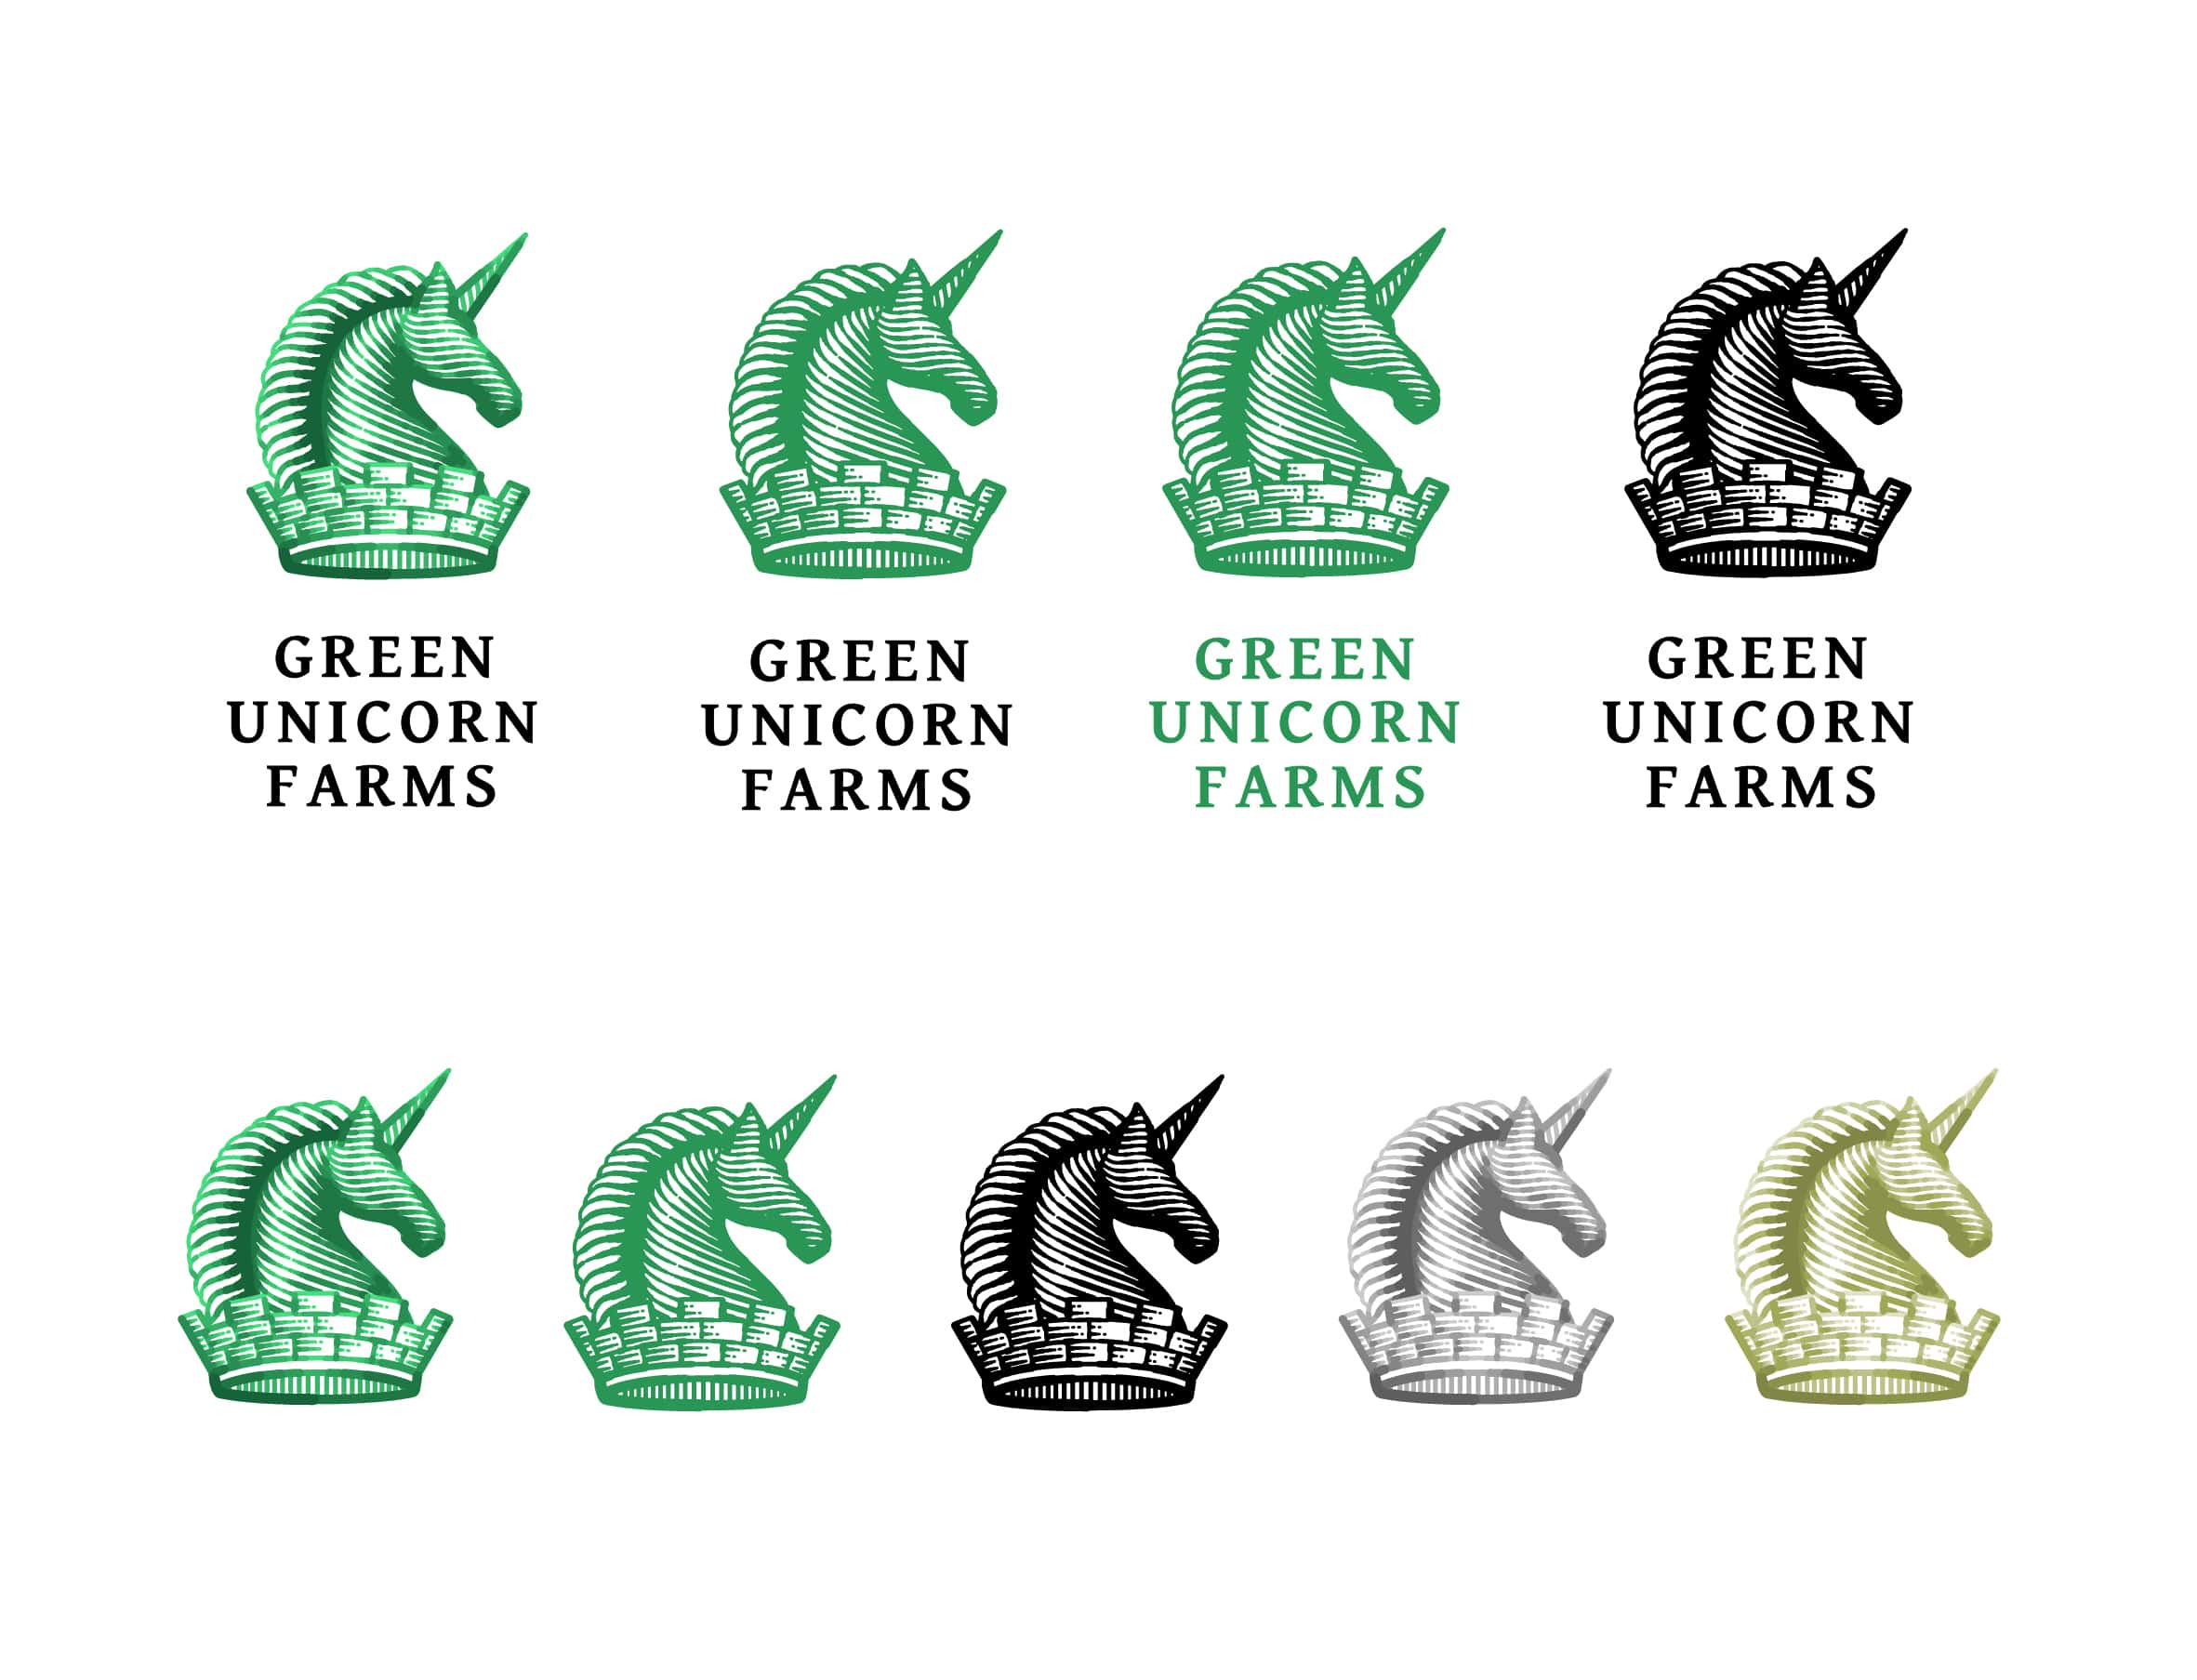 green unicorn farms logo styles min